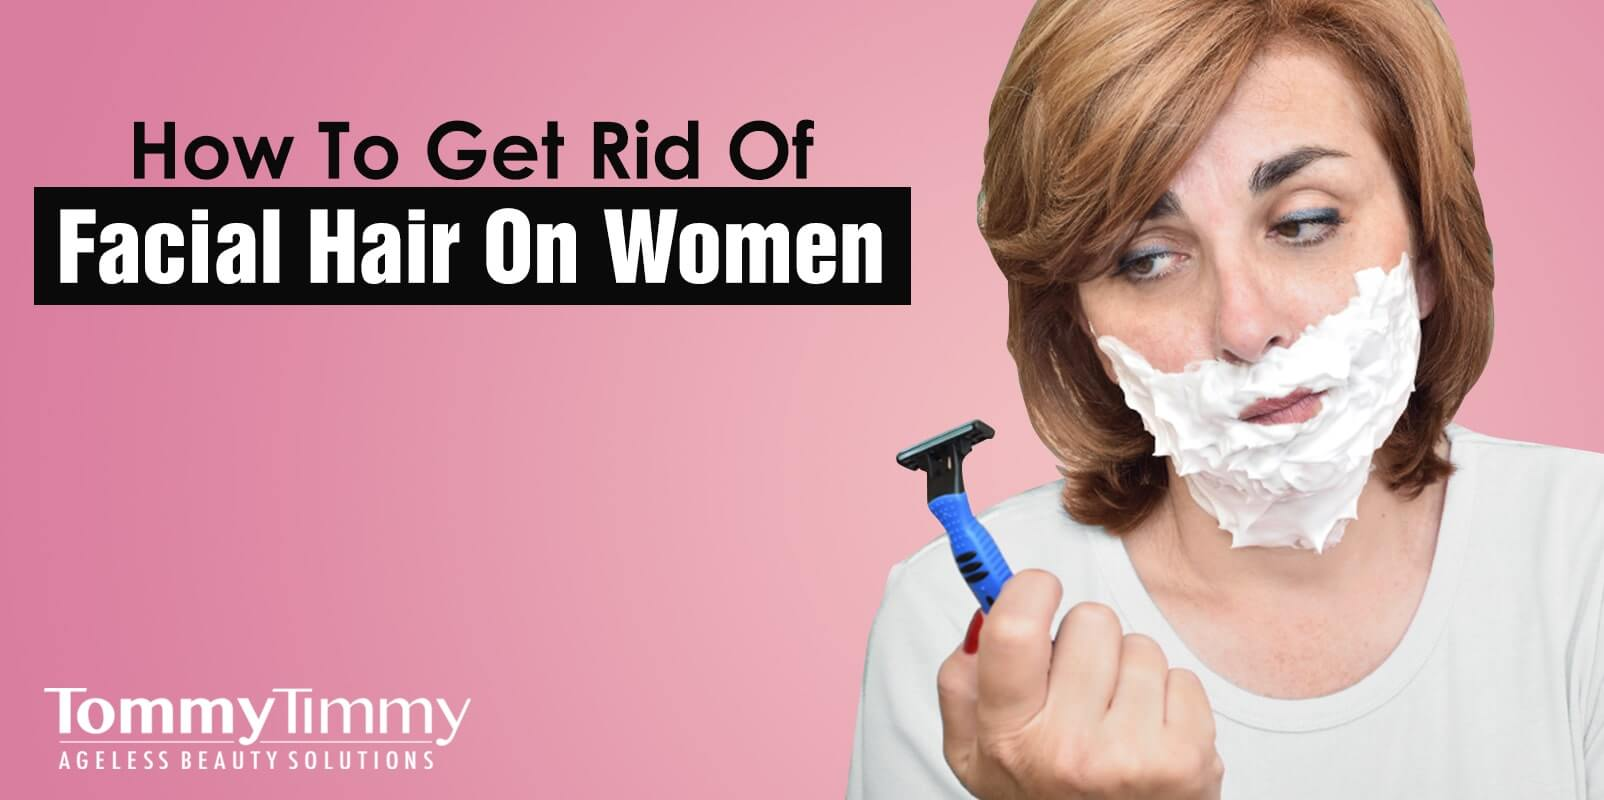 How To Get Rid Of Facial Hair On Women